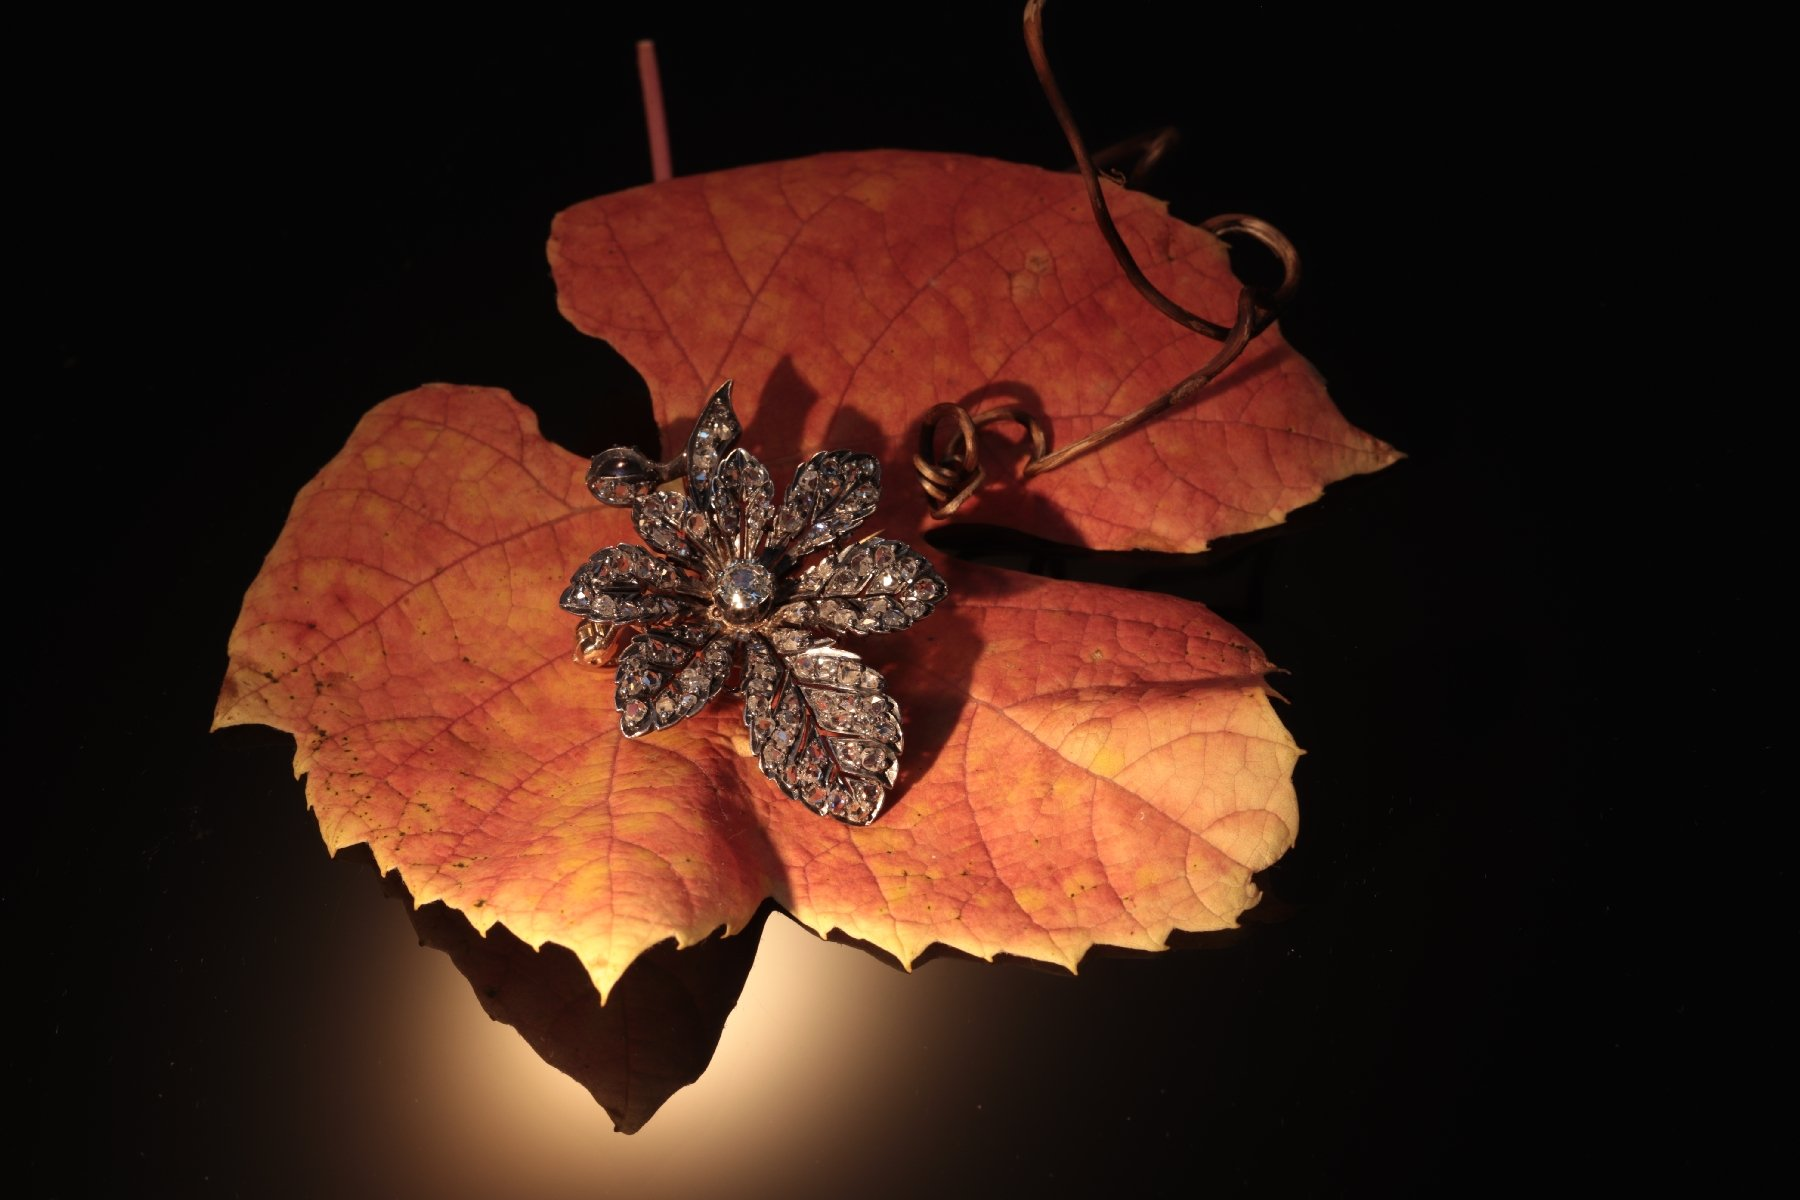 Click the picture to get to see this Antique Victorian chestnut leaf brooch fully embellished with over 100 diamonds.